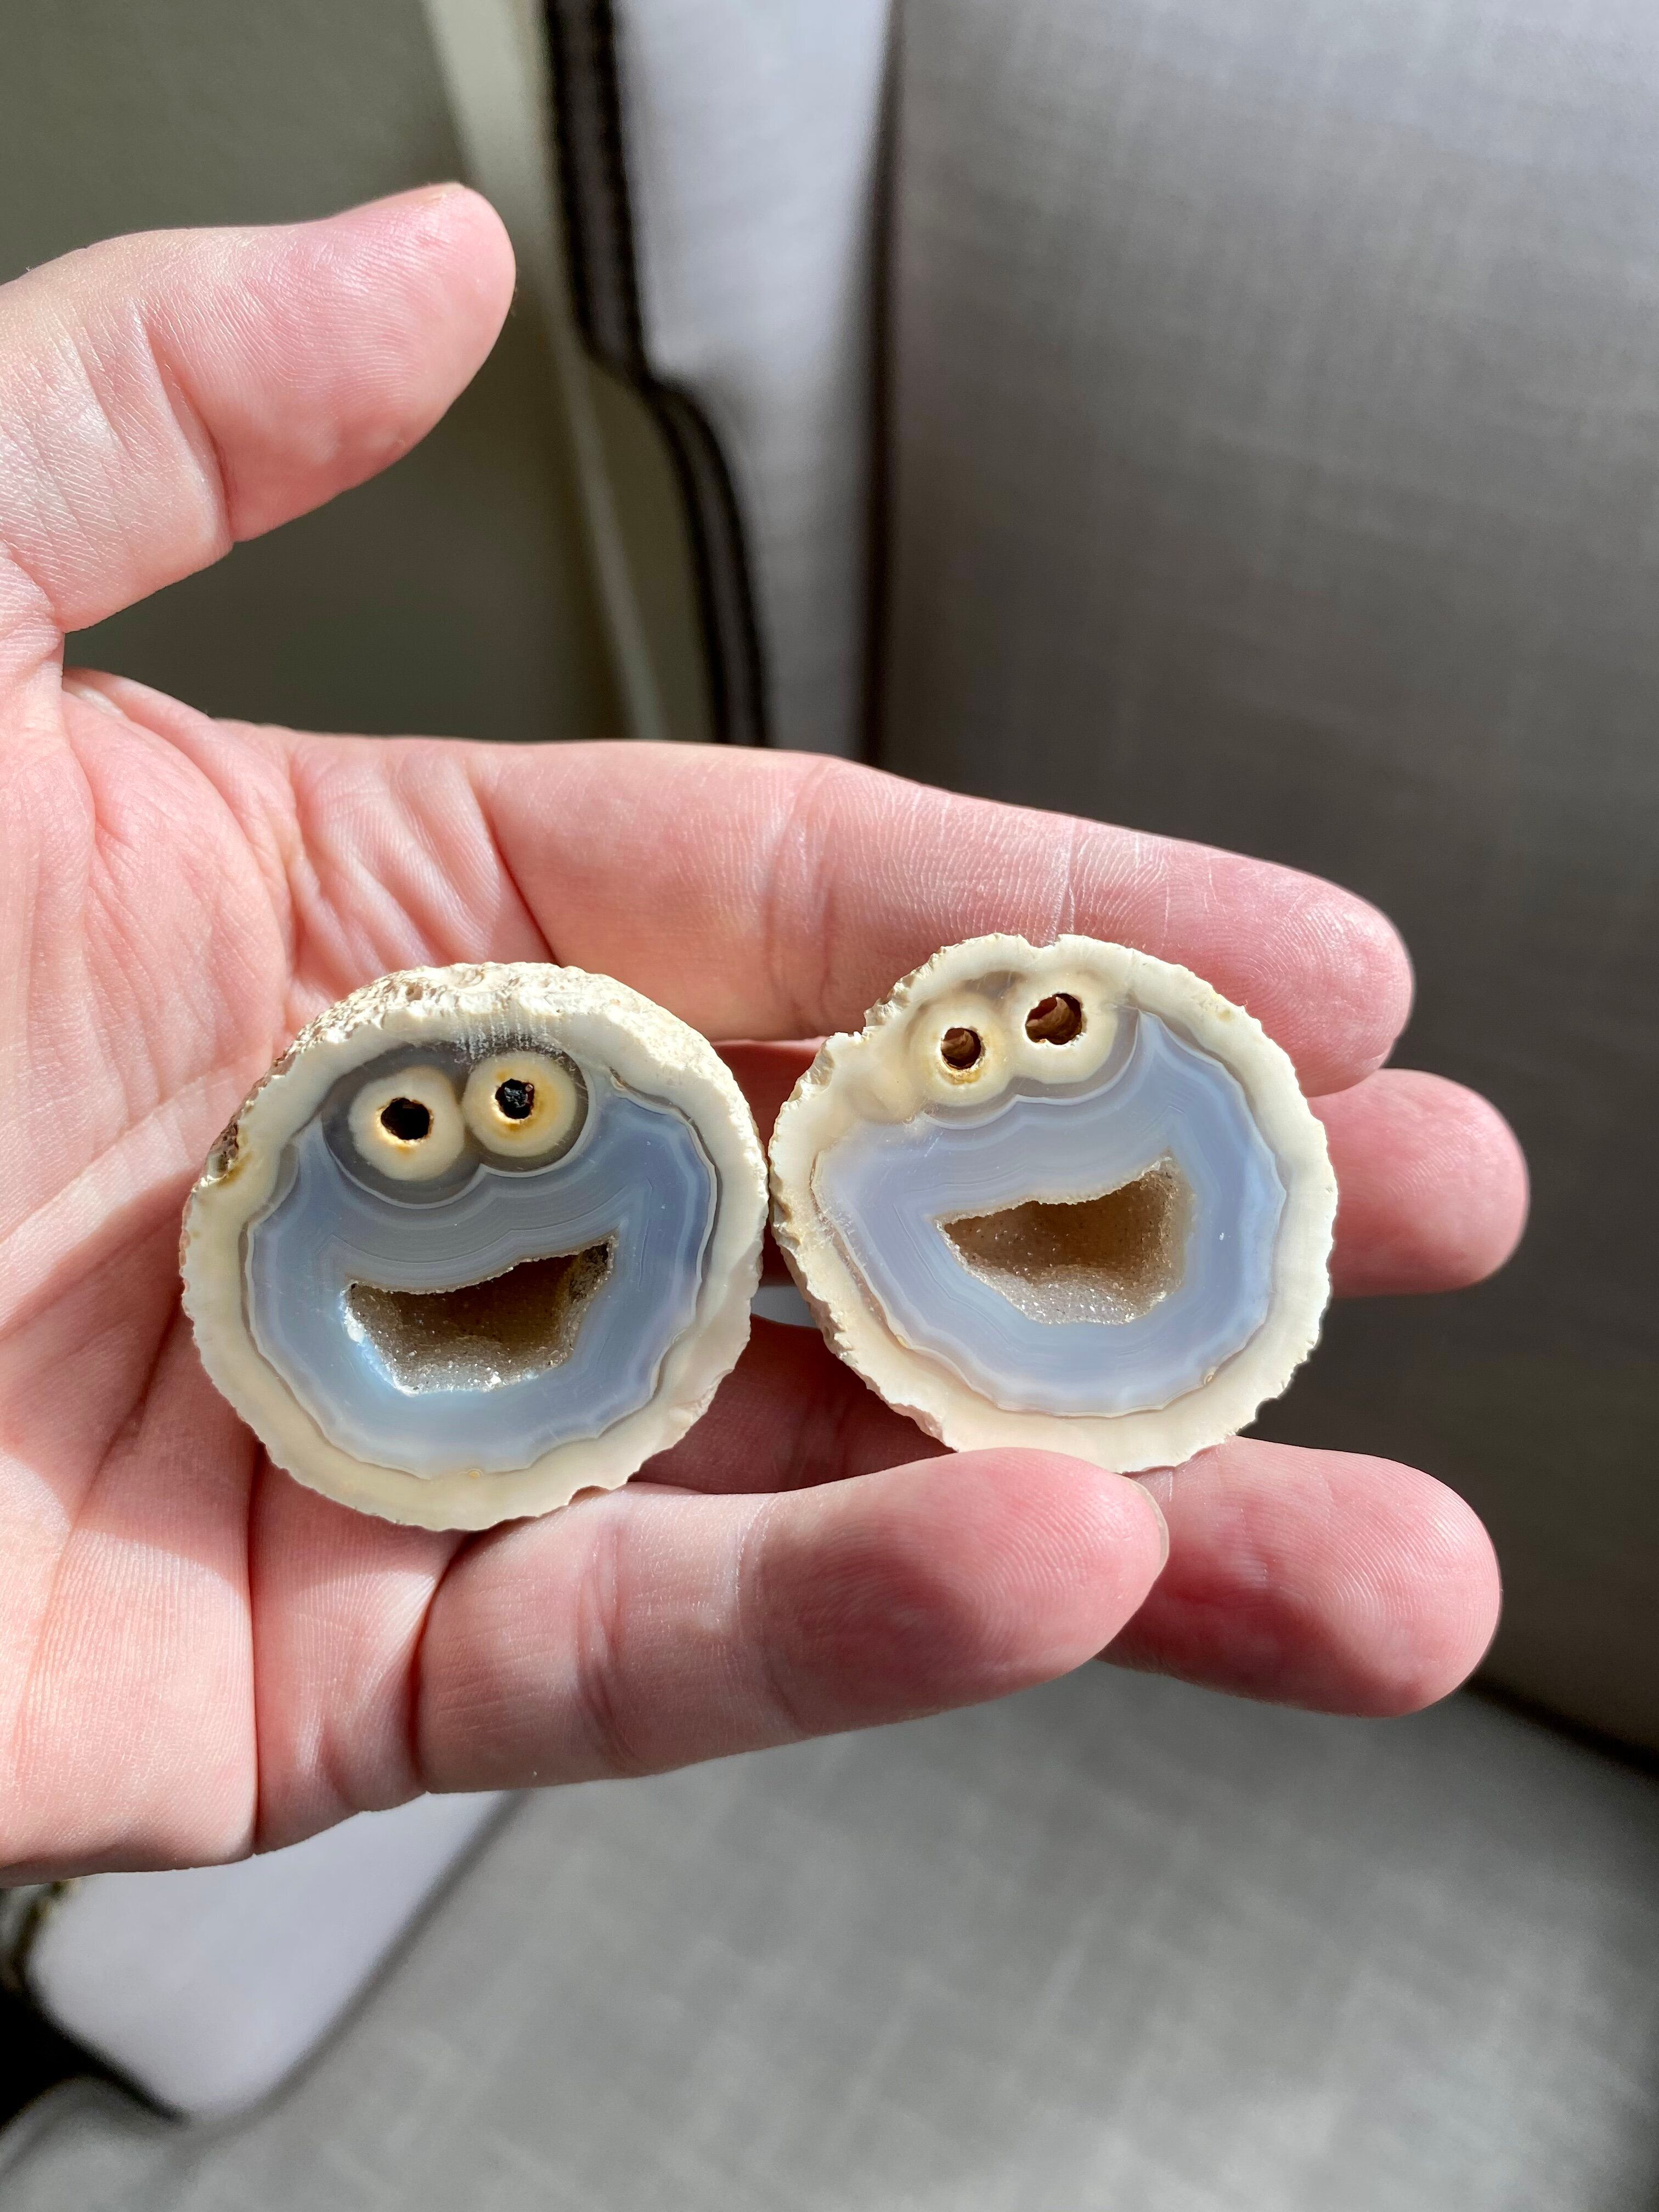 The Cookie Monster rock.